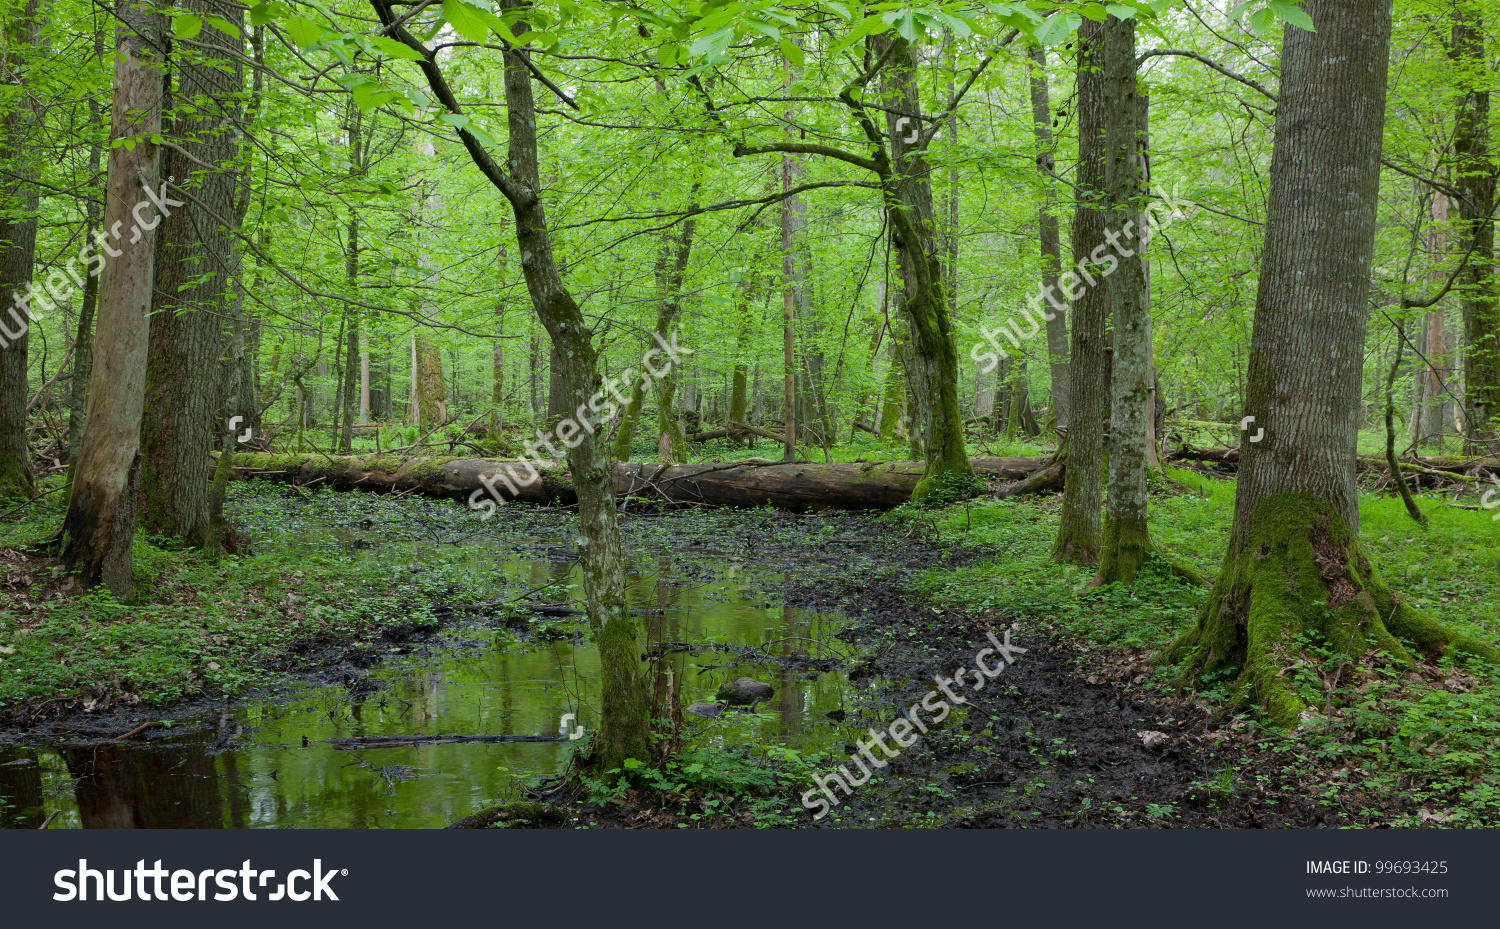 Springtime Wet Deciduous Forest With Standing Water And Dead Trees.